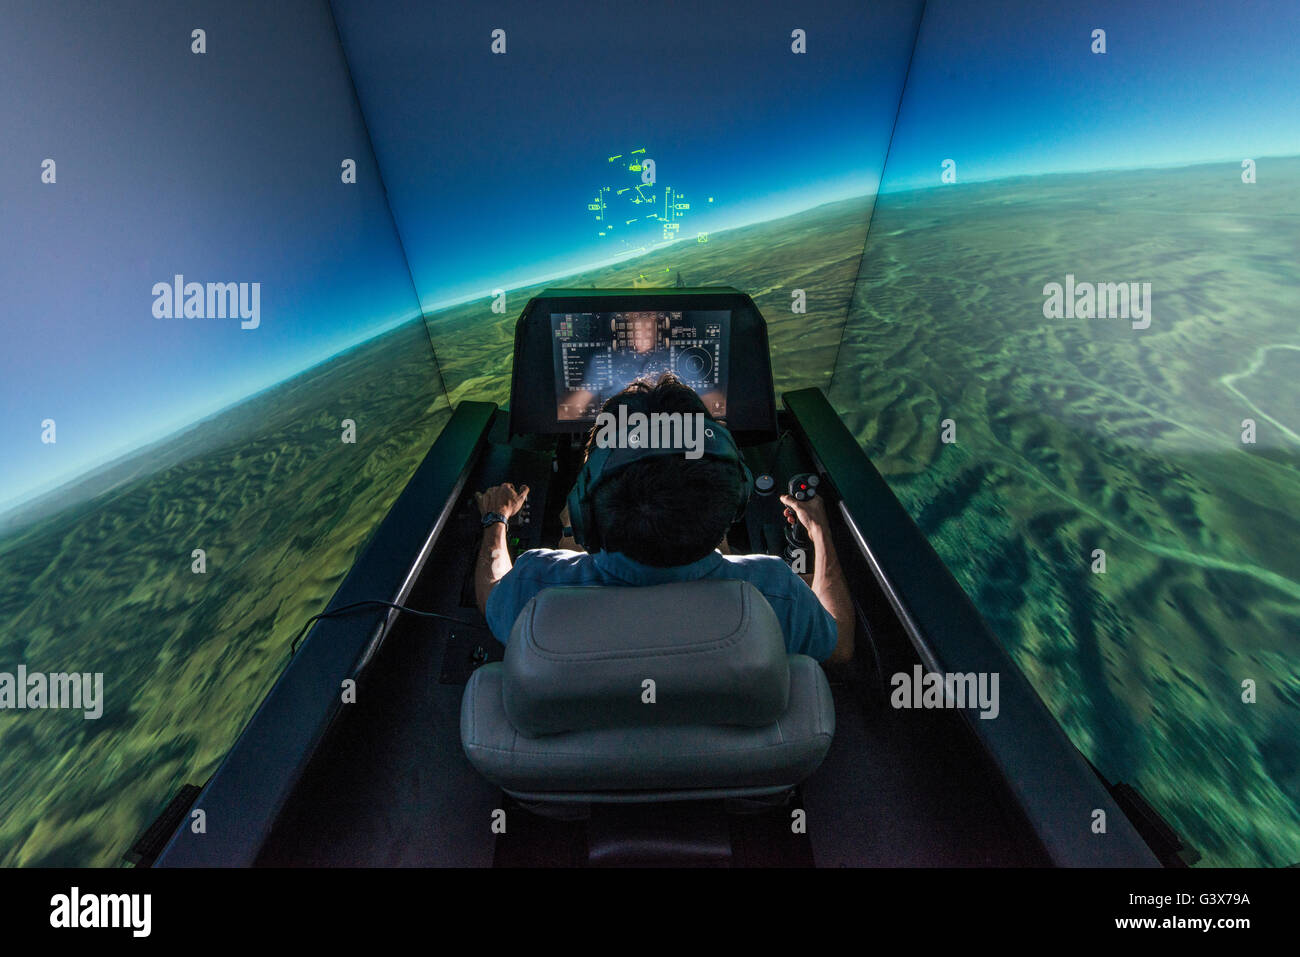 An aerospace engineer demonstrates the automatic ground collision avoidance system in the F-16 fighter aircraft - Stock Image